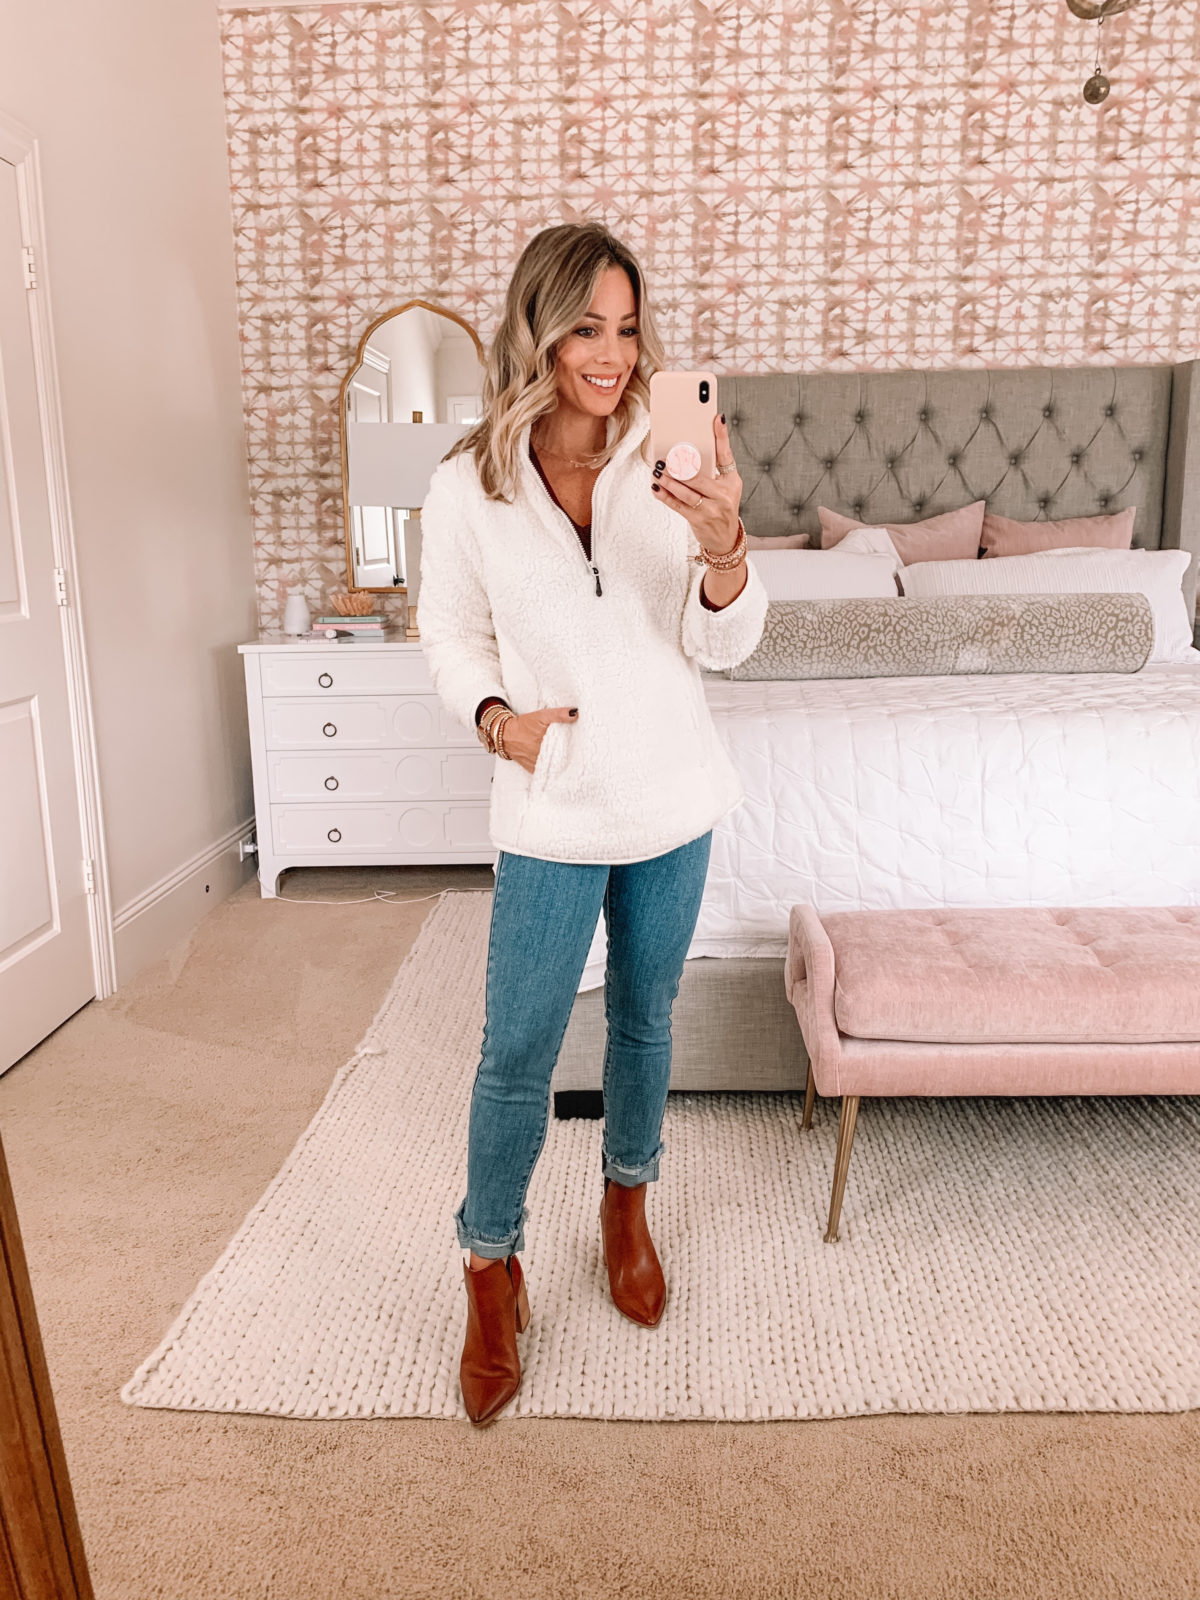 Amazon Fashion Faves, Teddy Bear Fleece, Jeans, Booties